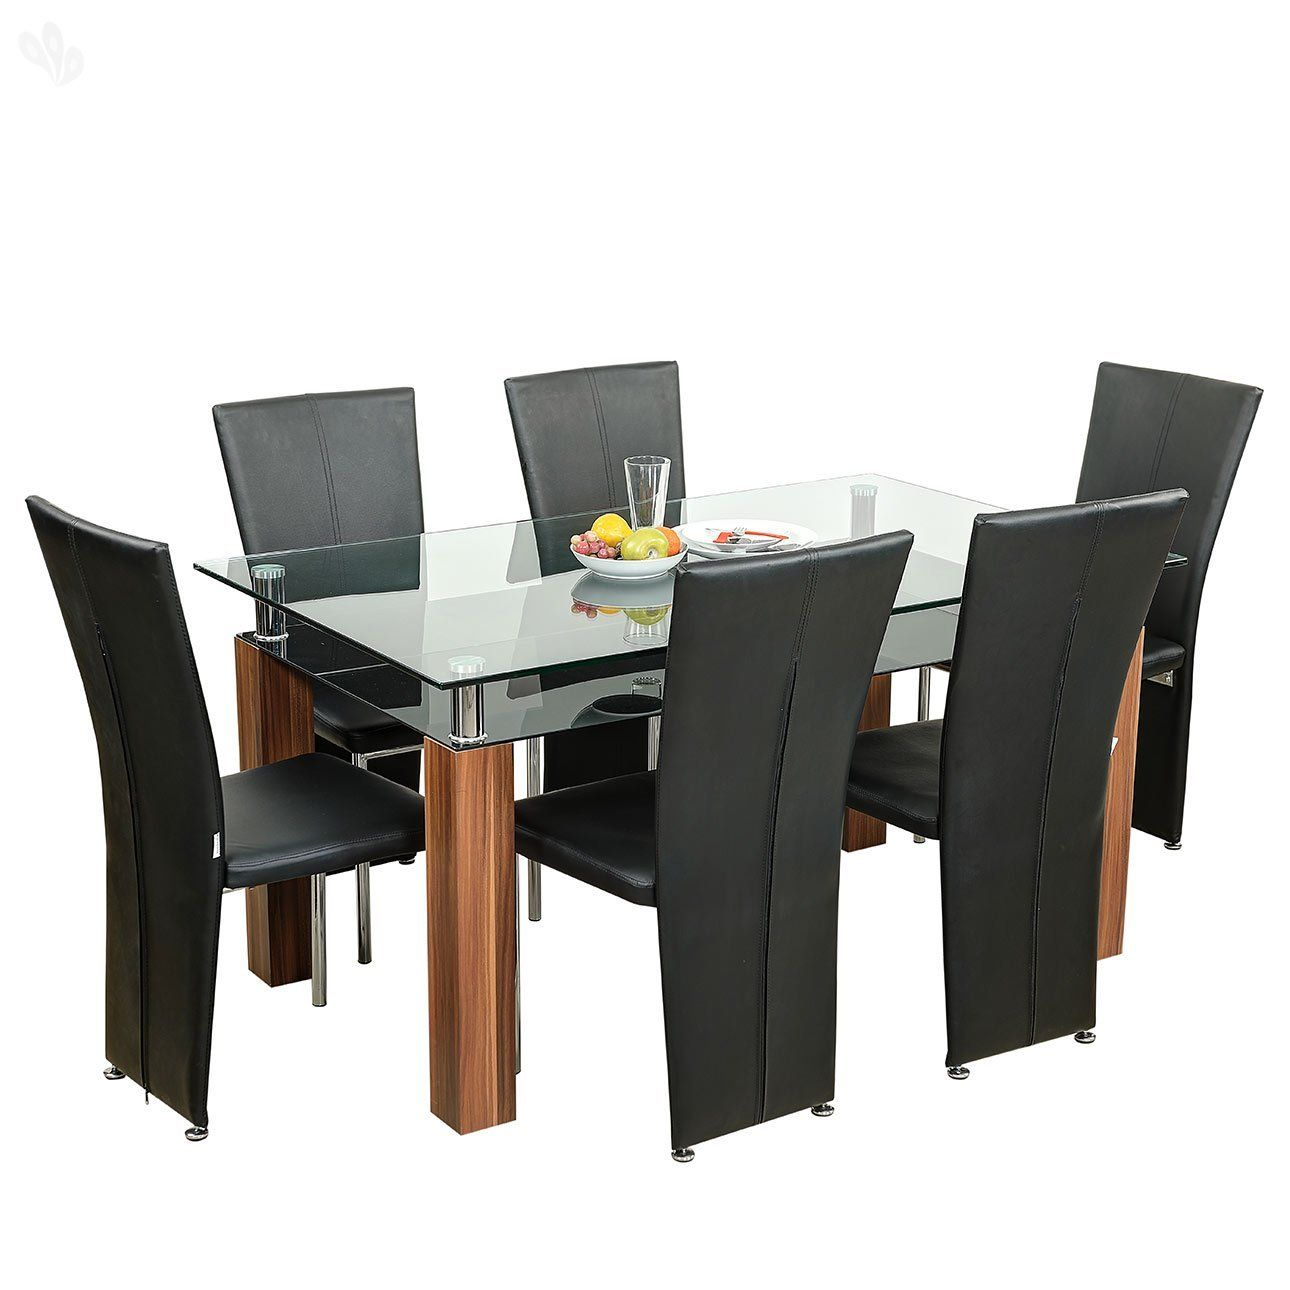 Royal Oak Iris Dining Table Set (Honey Brown) - Best Home and ...